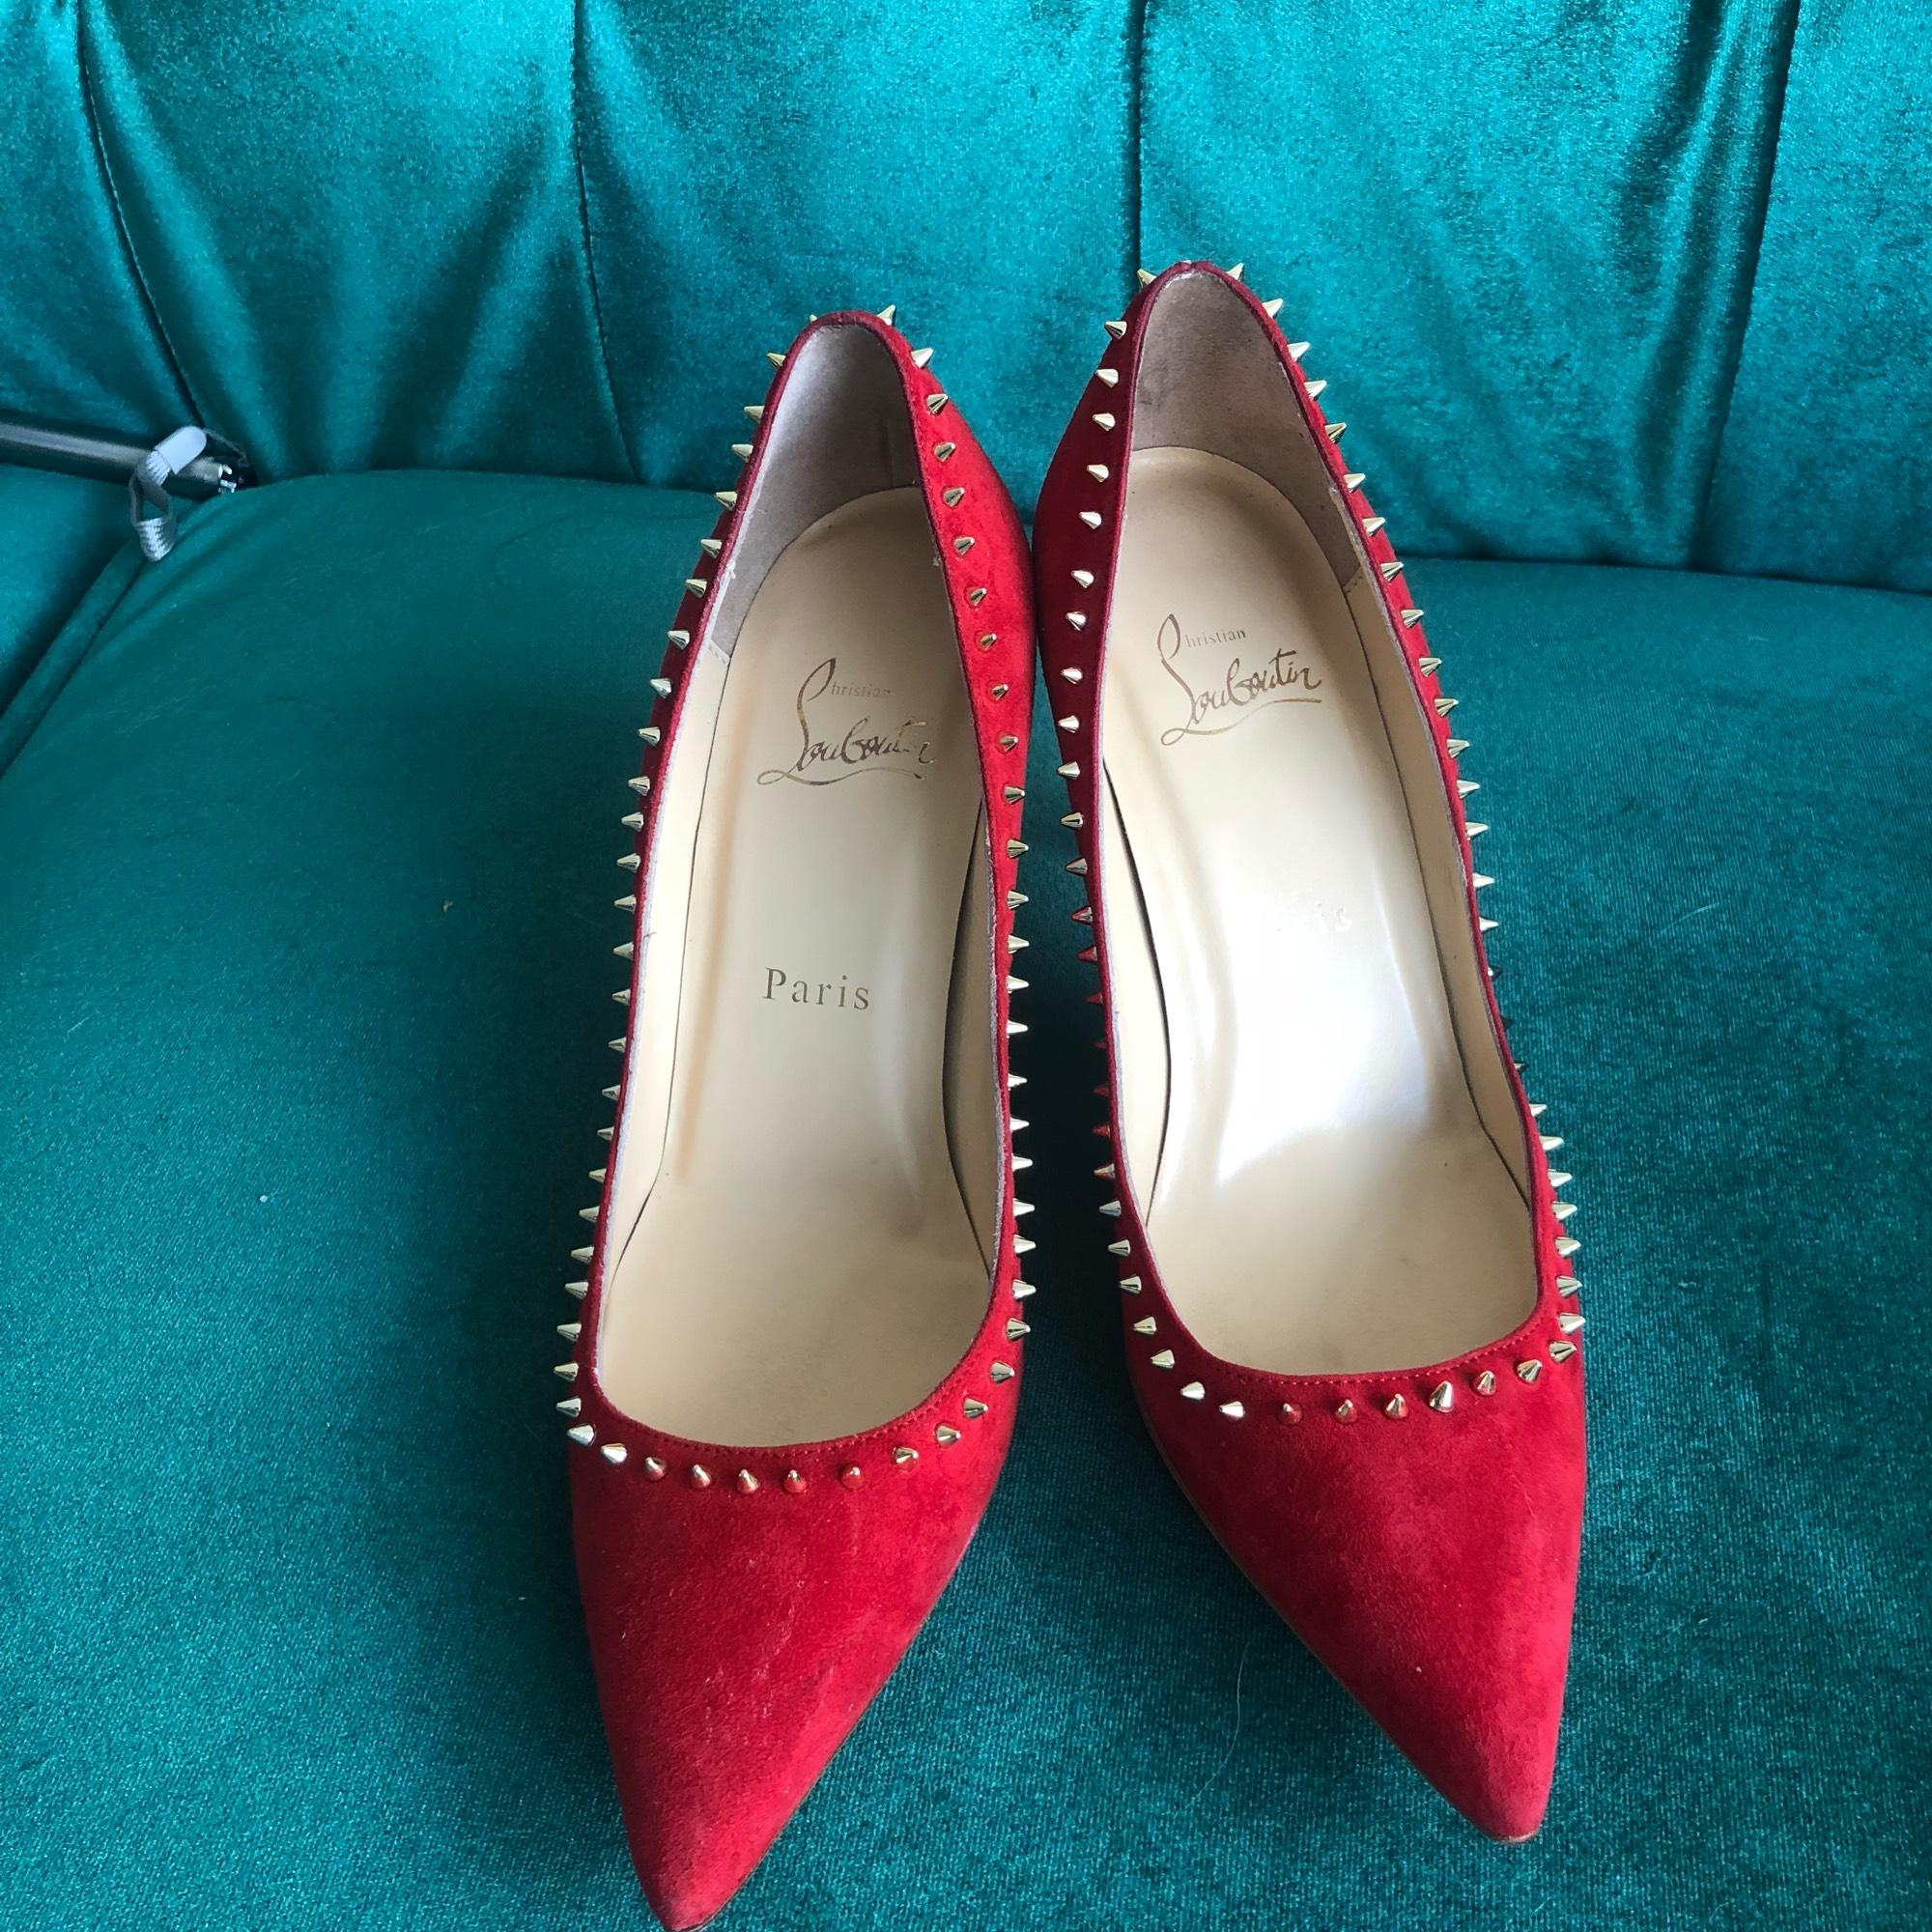 31318968d81d ... discount code for red metallic oeillet sole louboutin christian red  pumps 85mm spiked anjalina suede 7pqur ...